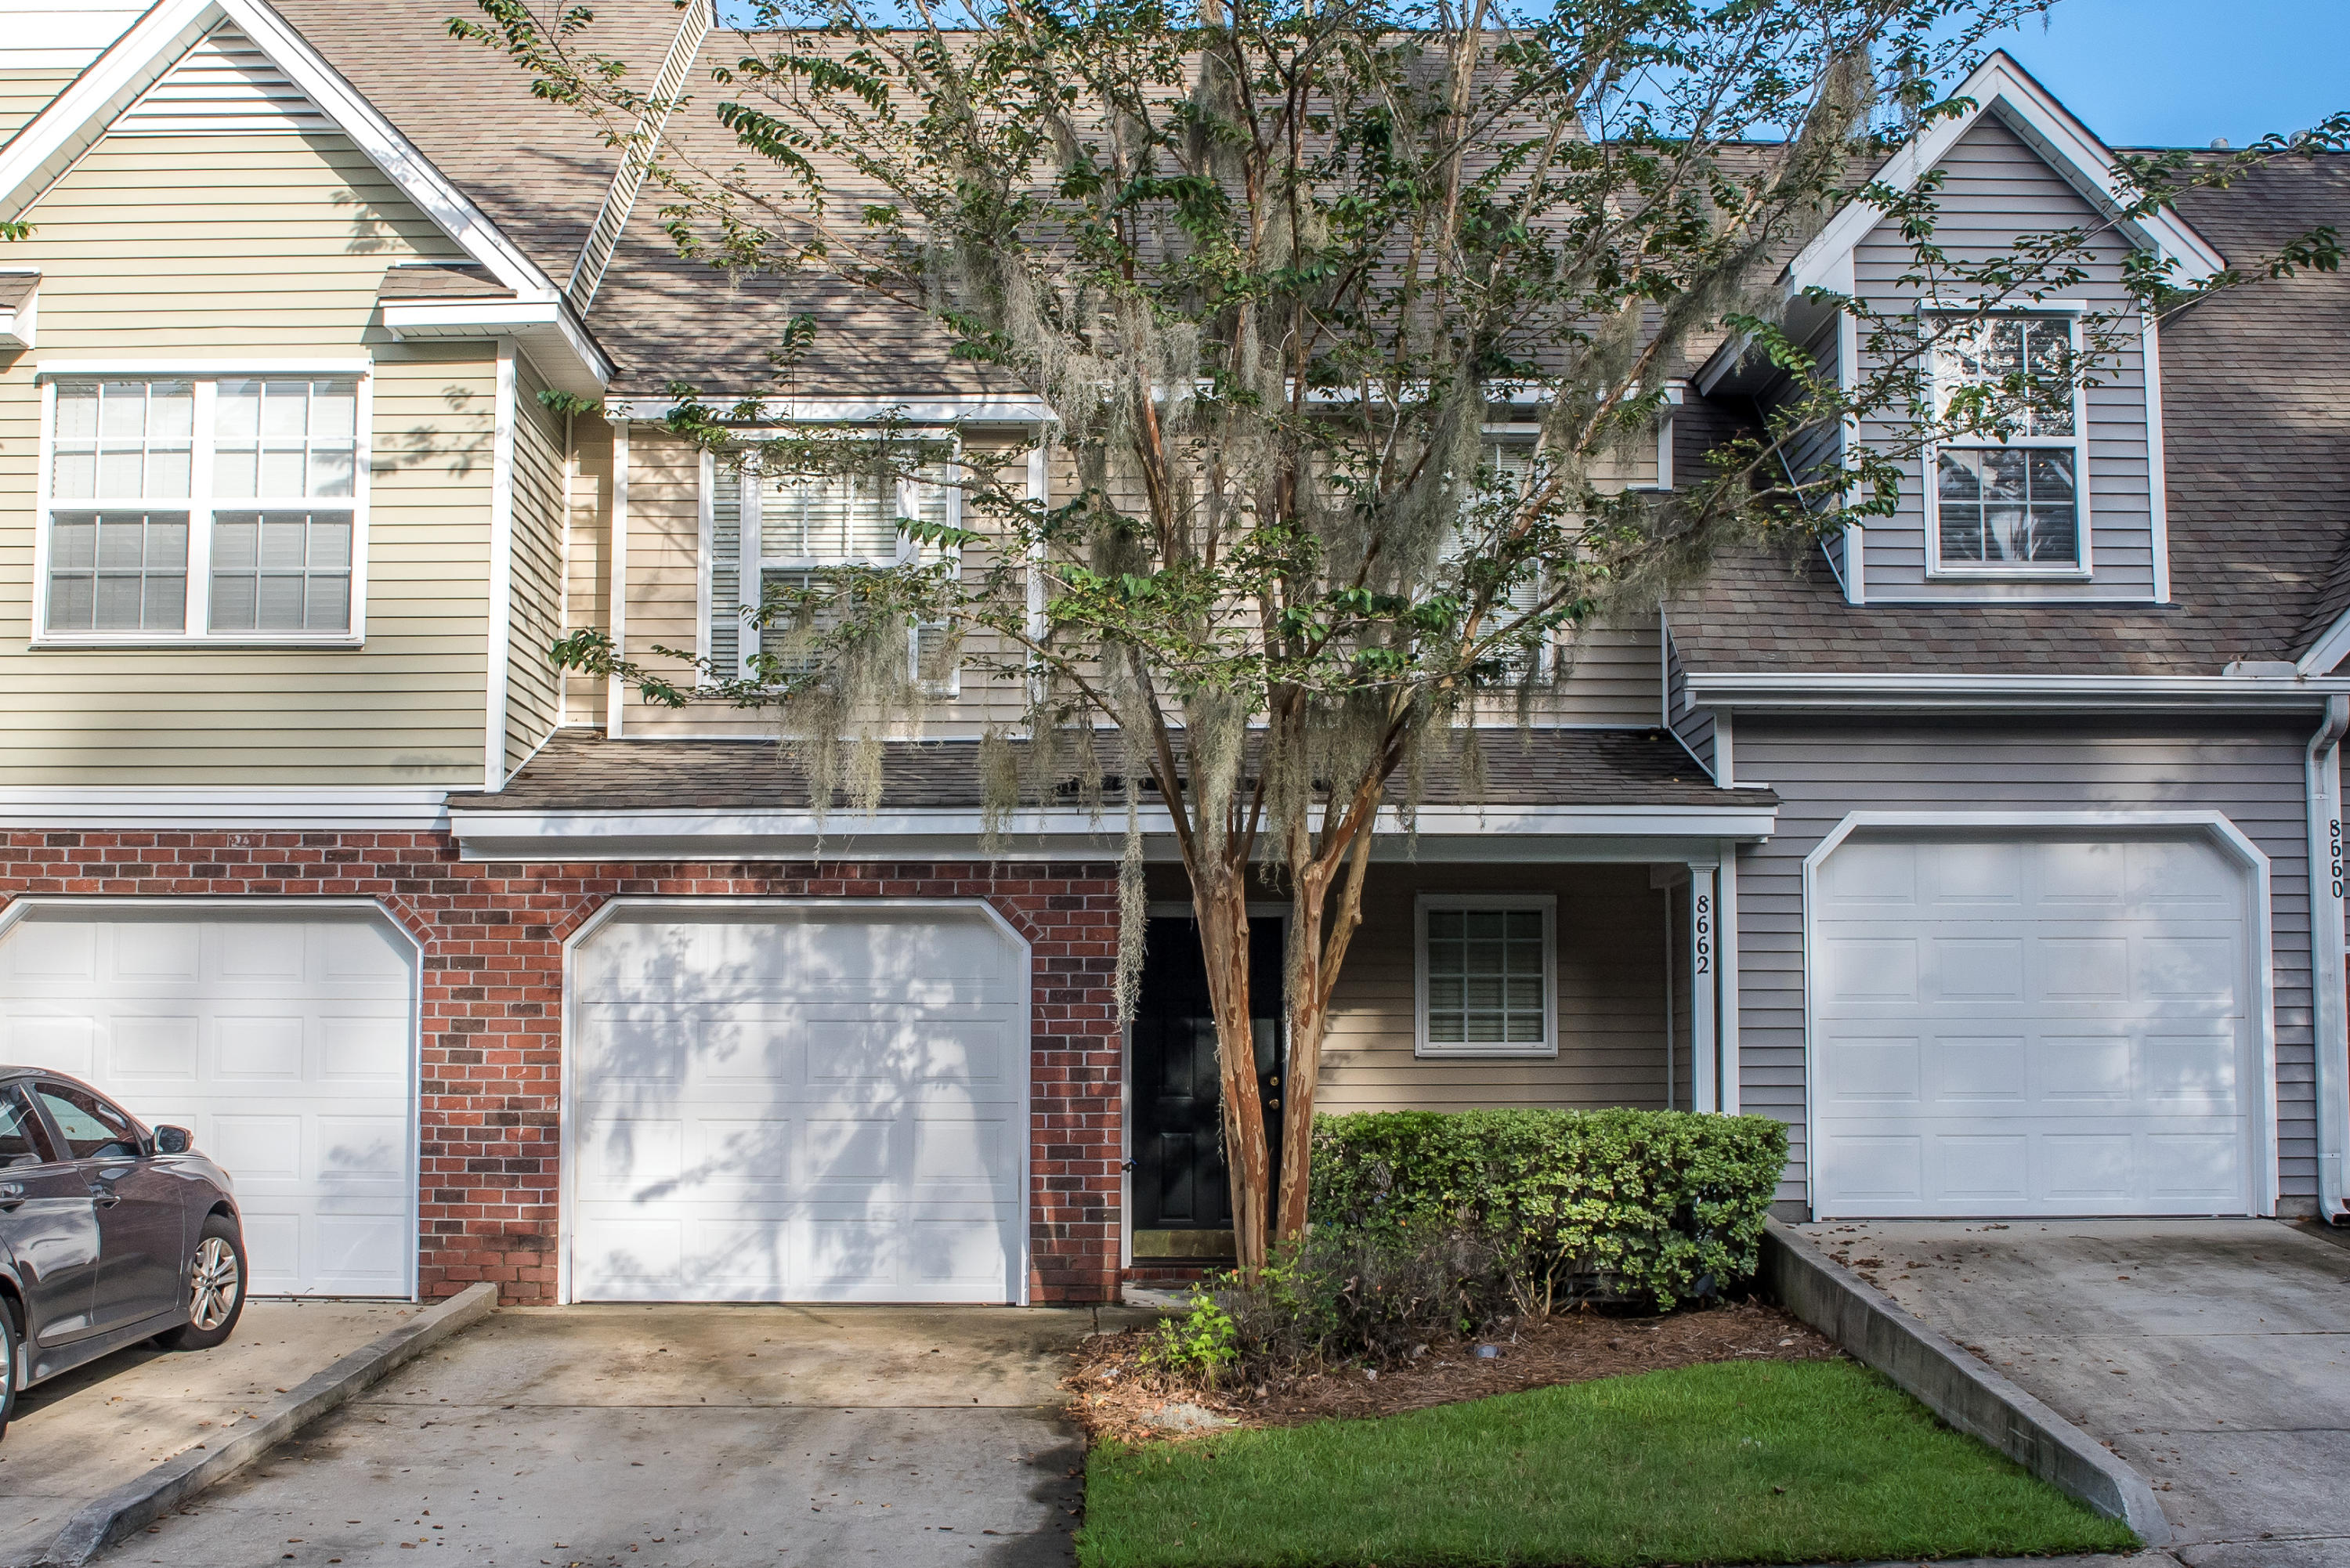 8662 Grassy Oak Trail North Charleston, SC 29420